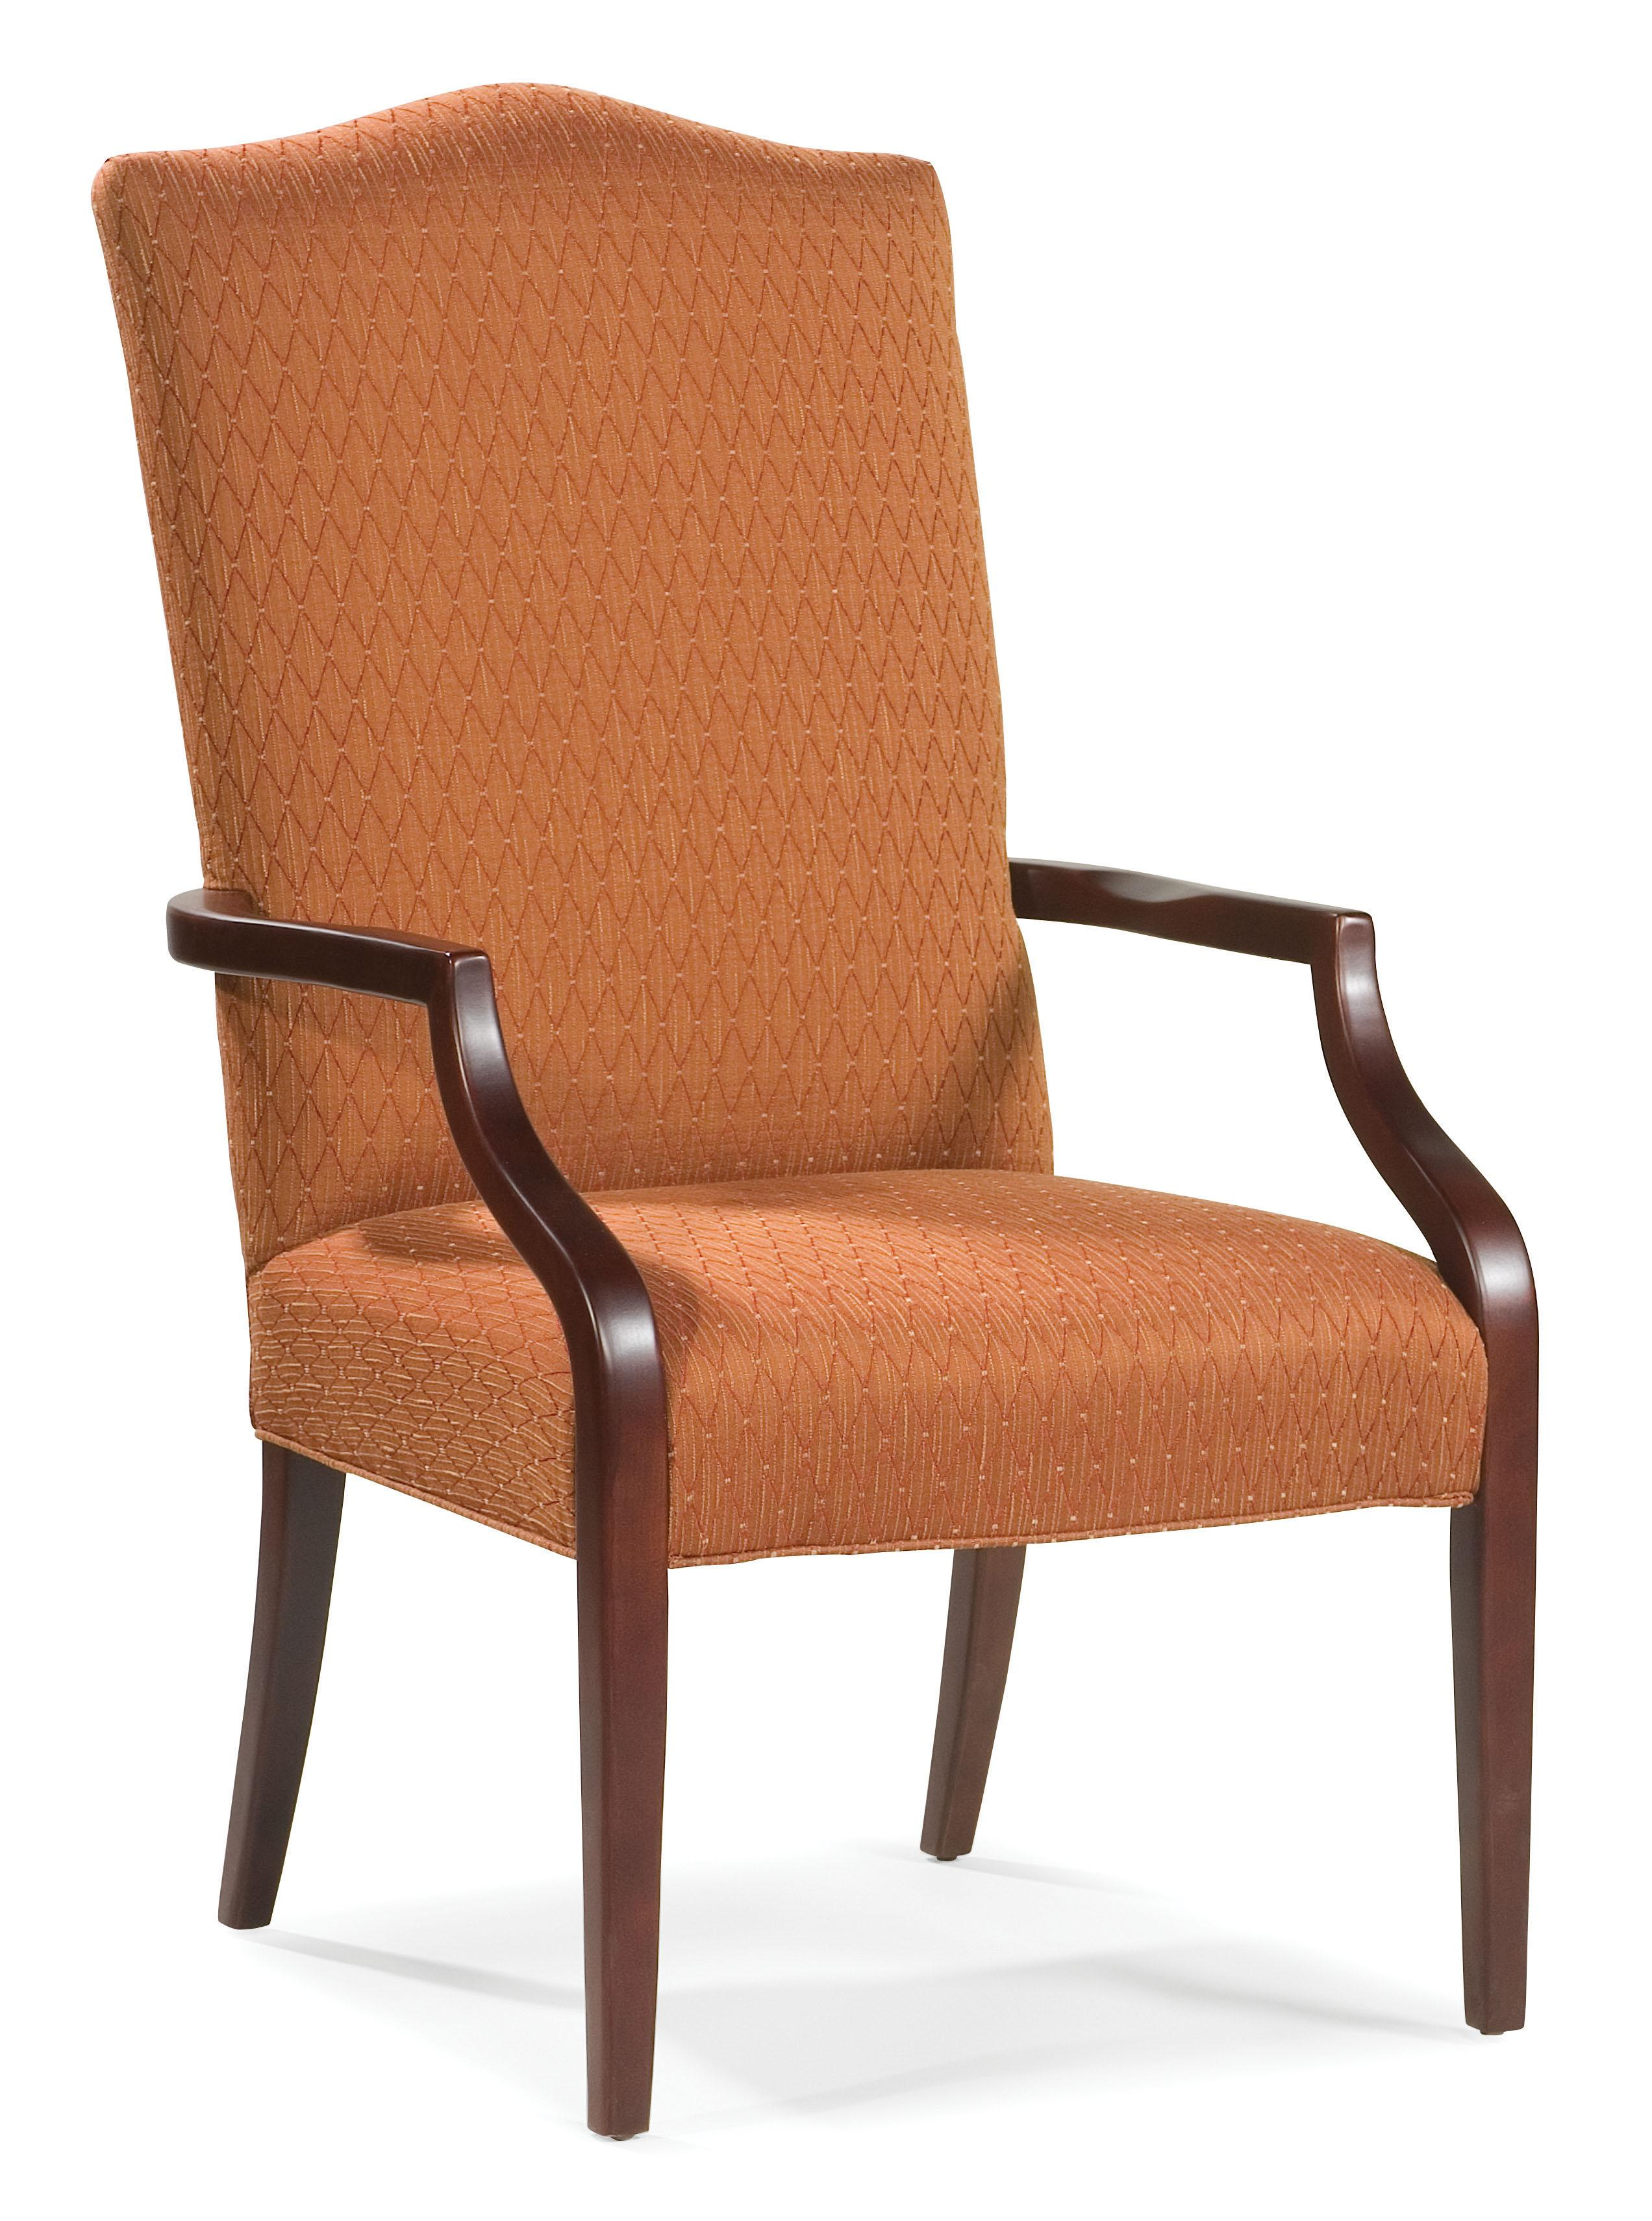 Fairfield Chairs Exposed Wood Chair - Item Number: 5491-01